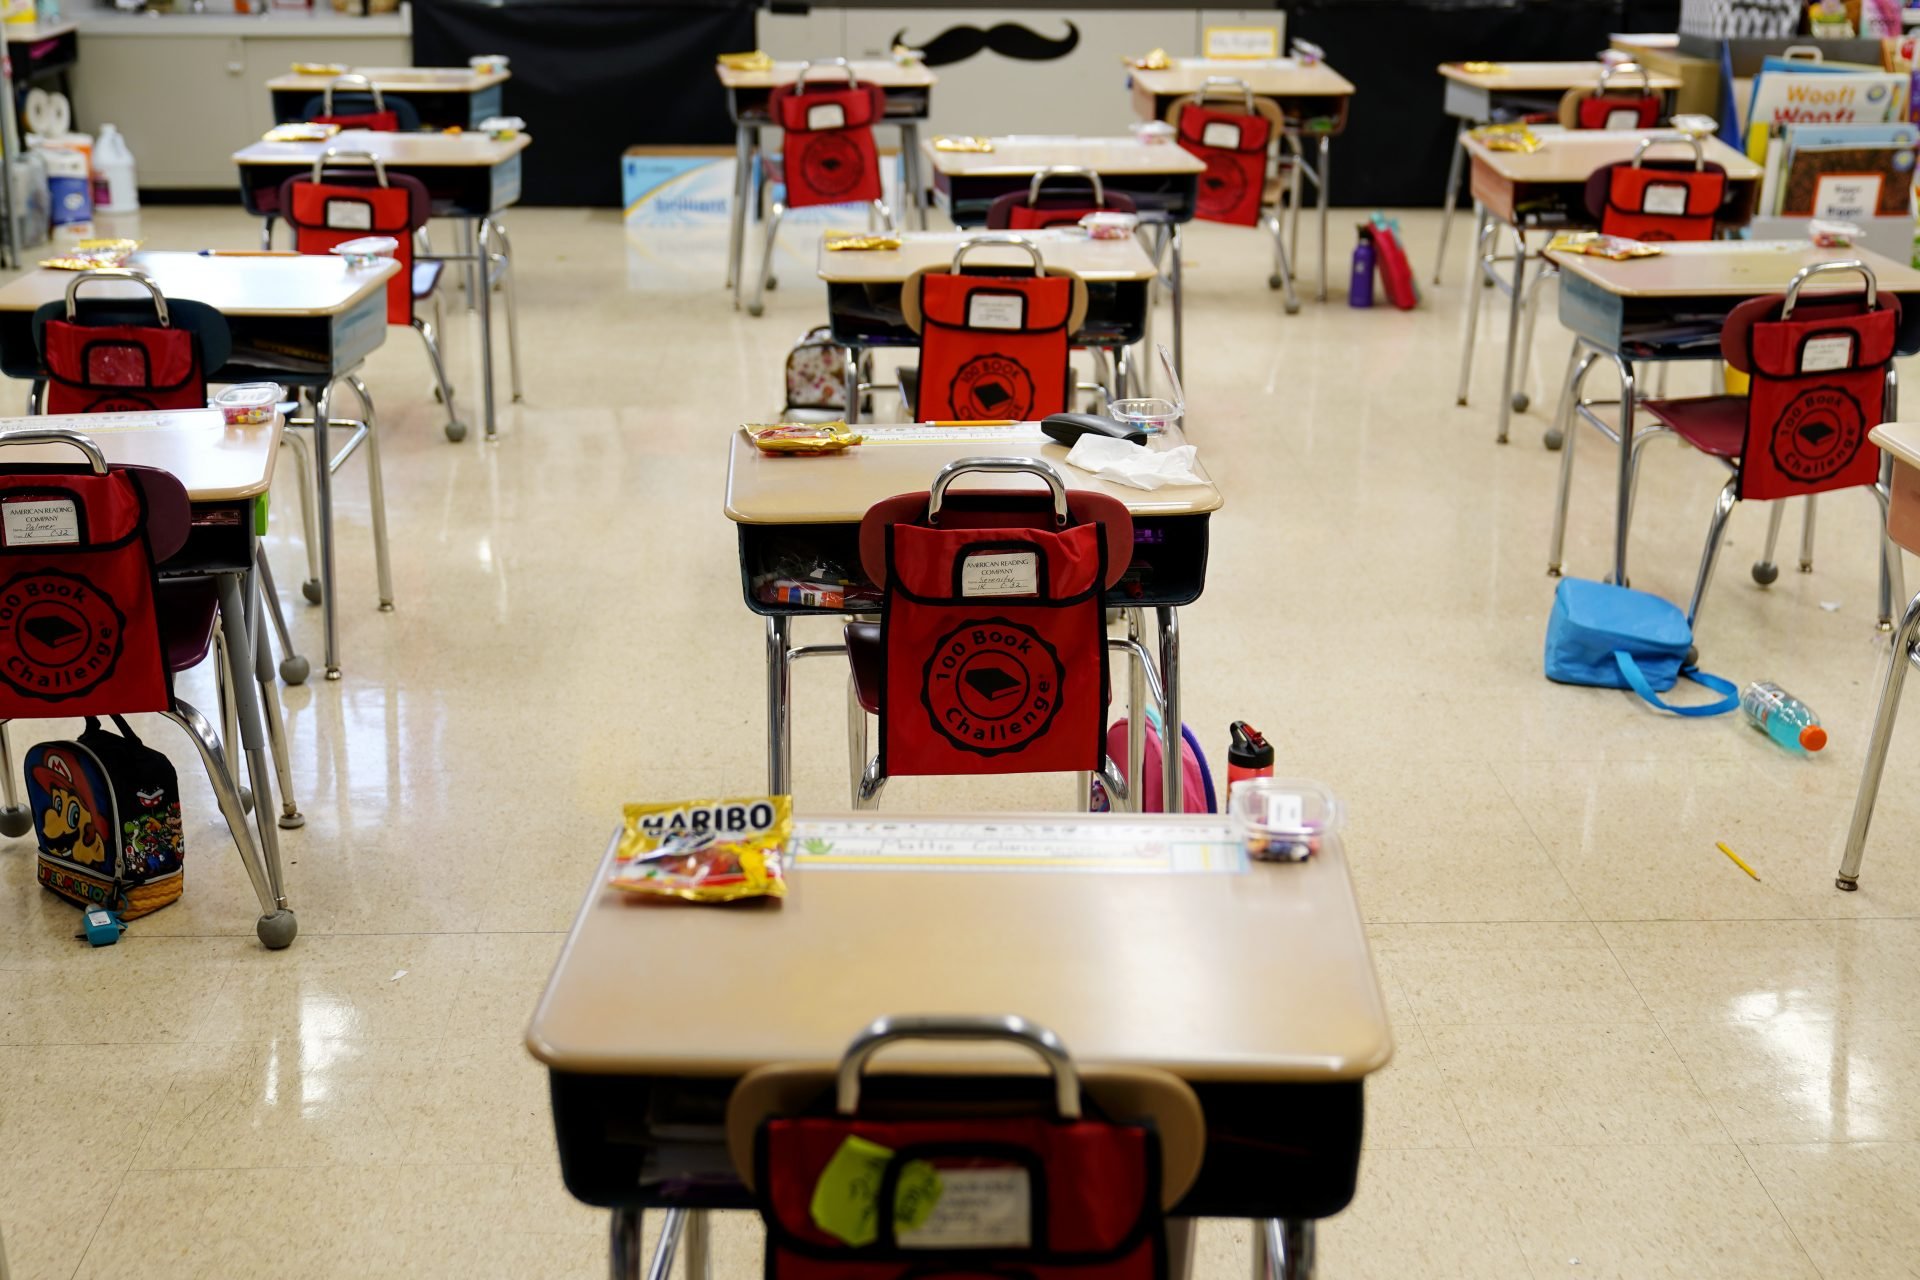 Desks are arranged in a classroom at Panther Valley Elementary School, Thursday, March 11, 2021, in Nesquehoning, Pa. On May 26, 2020, former student, 9-year-old Ava Lerario; her mother, Ashley Belson, and her father, Marc Lerario were found fatally shot inside their home.